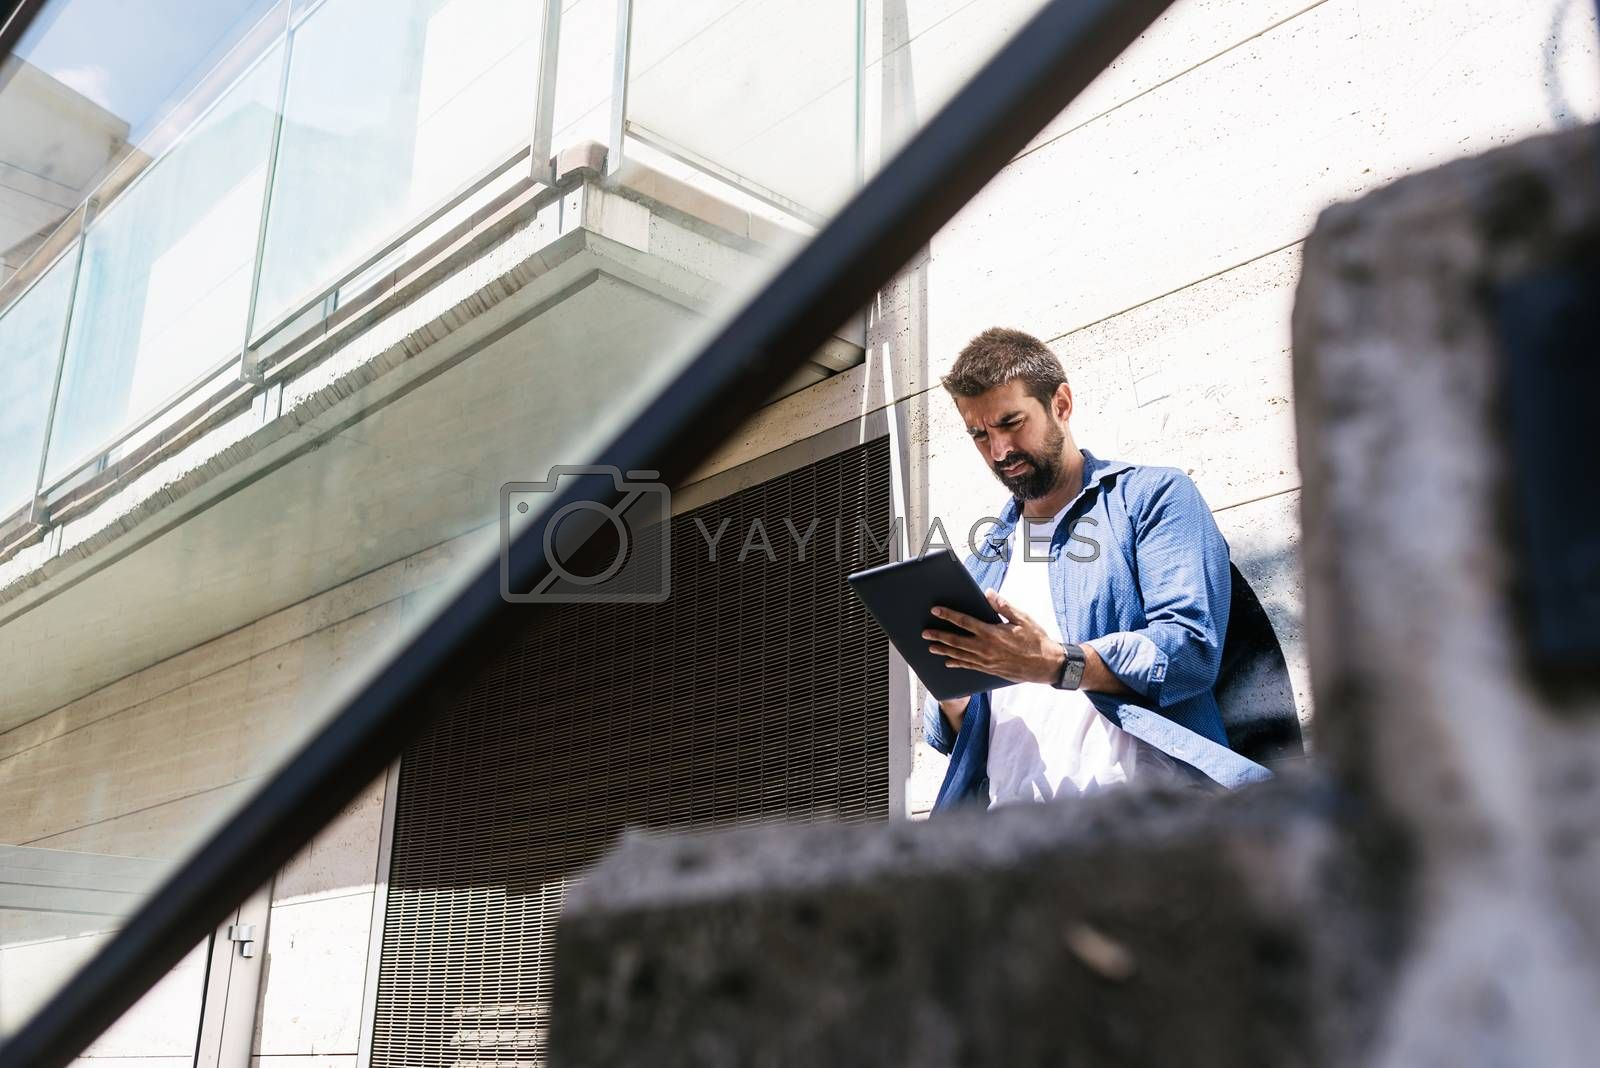 Bearded man sitting on steps while using a tablet by raferto1973